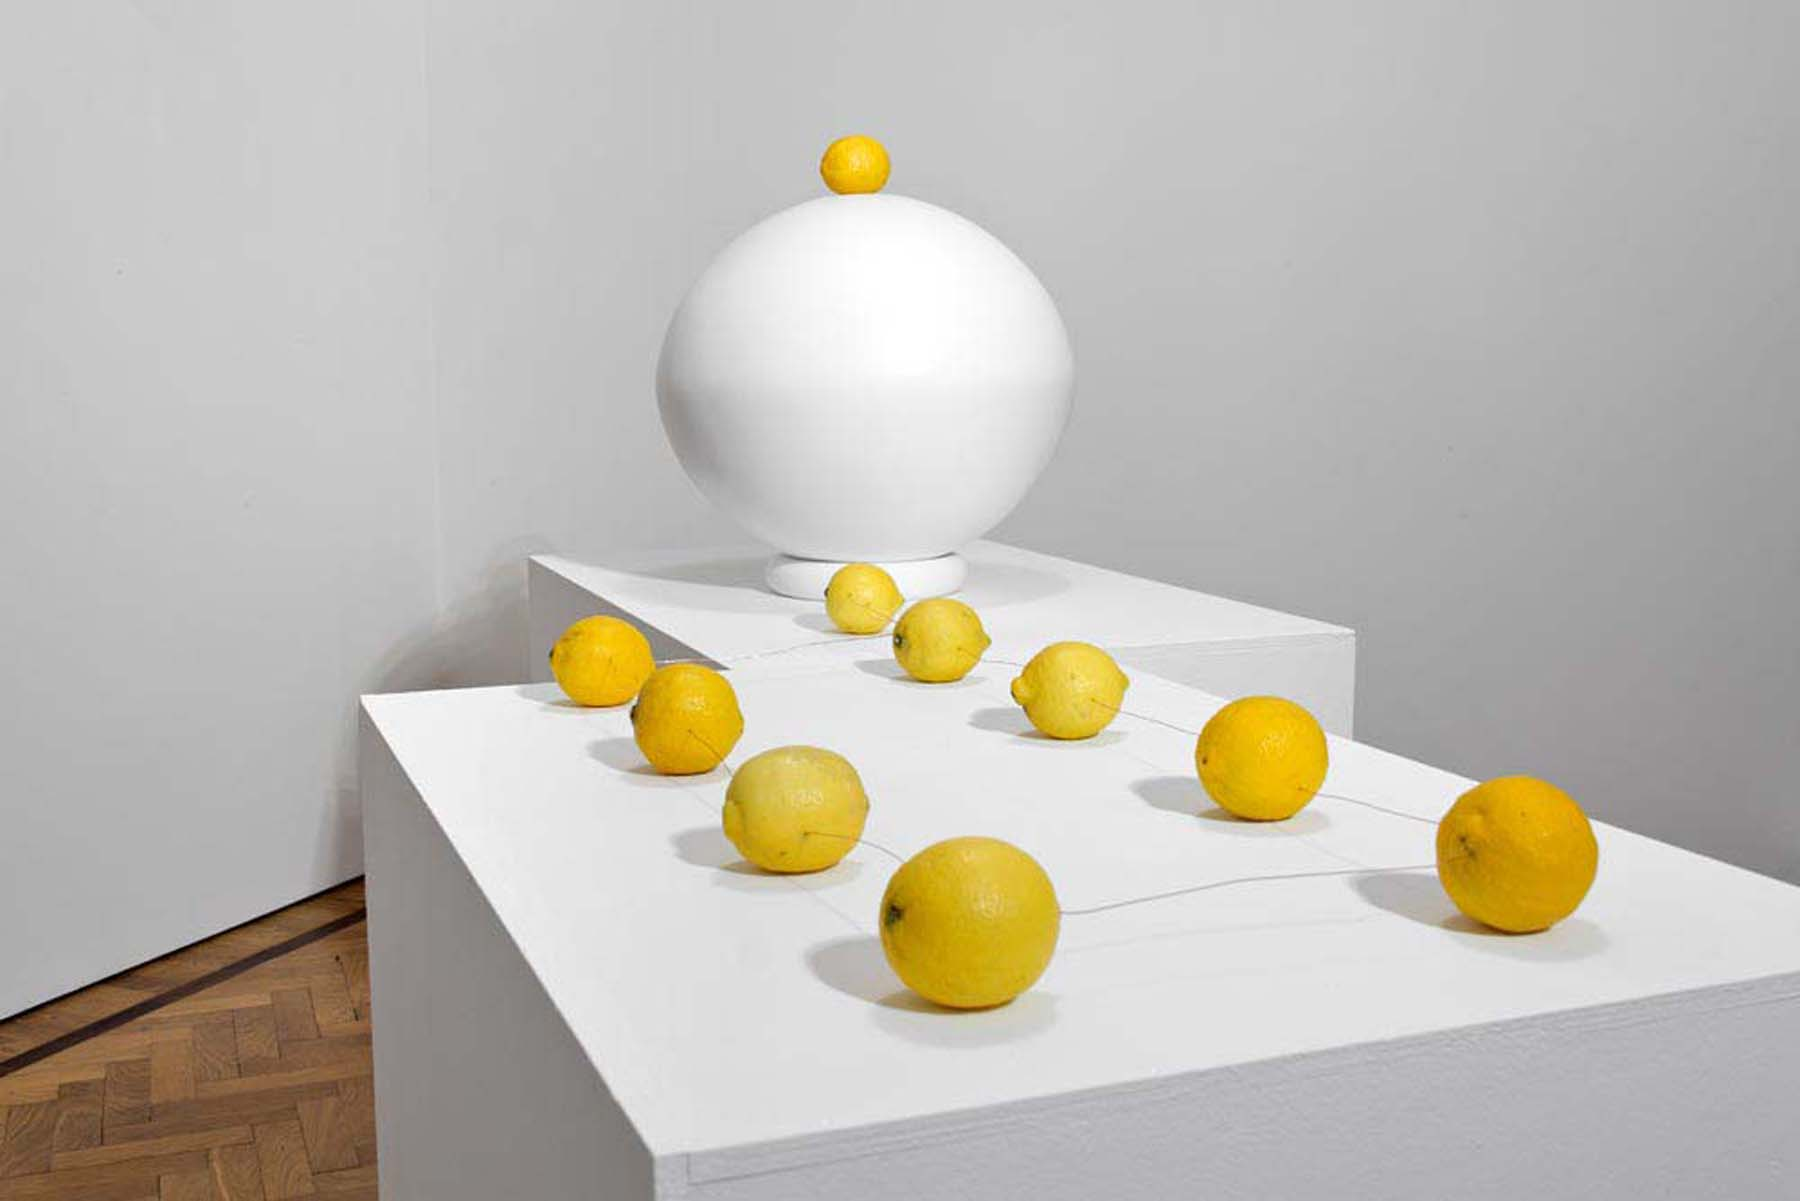 Michele Spanghero, Natura morta (Citron), 2013. Photo Silvia Longhi